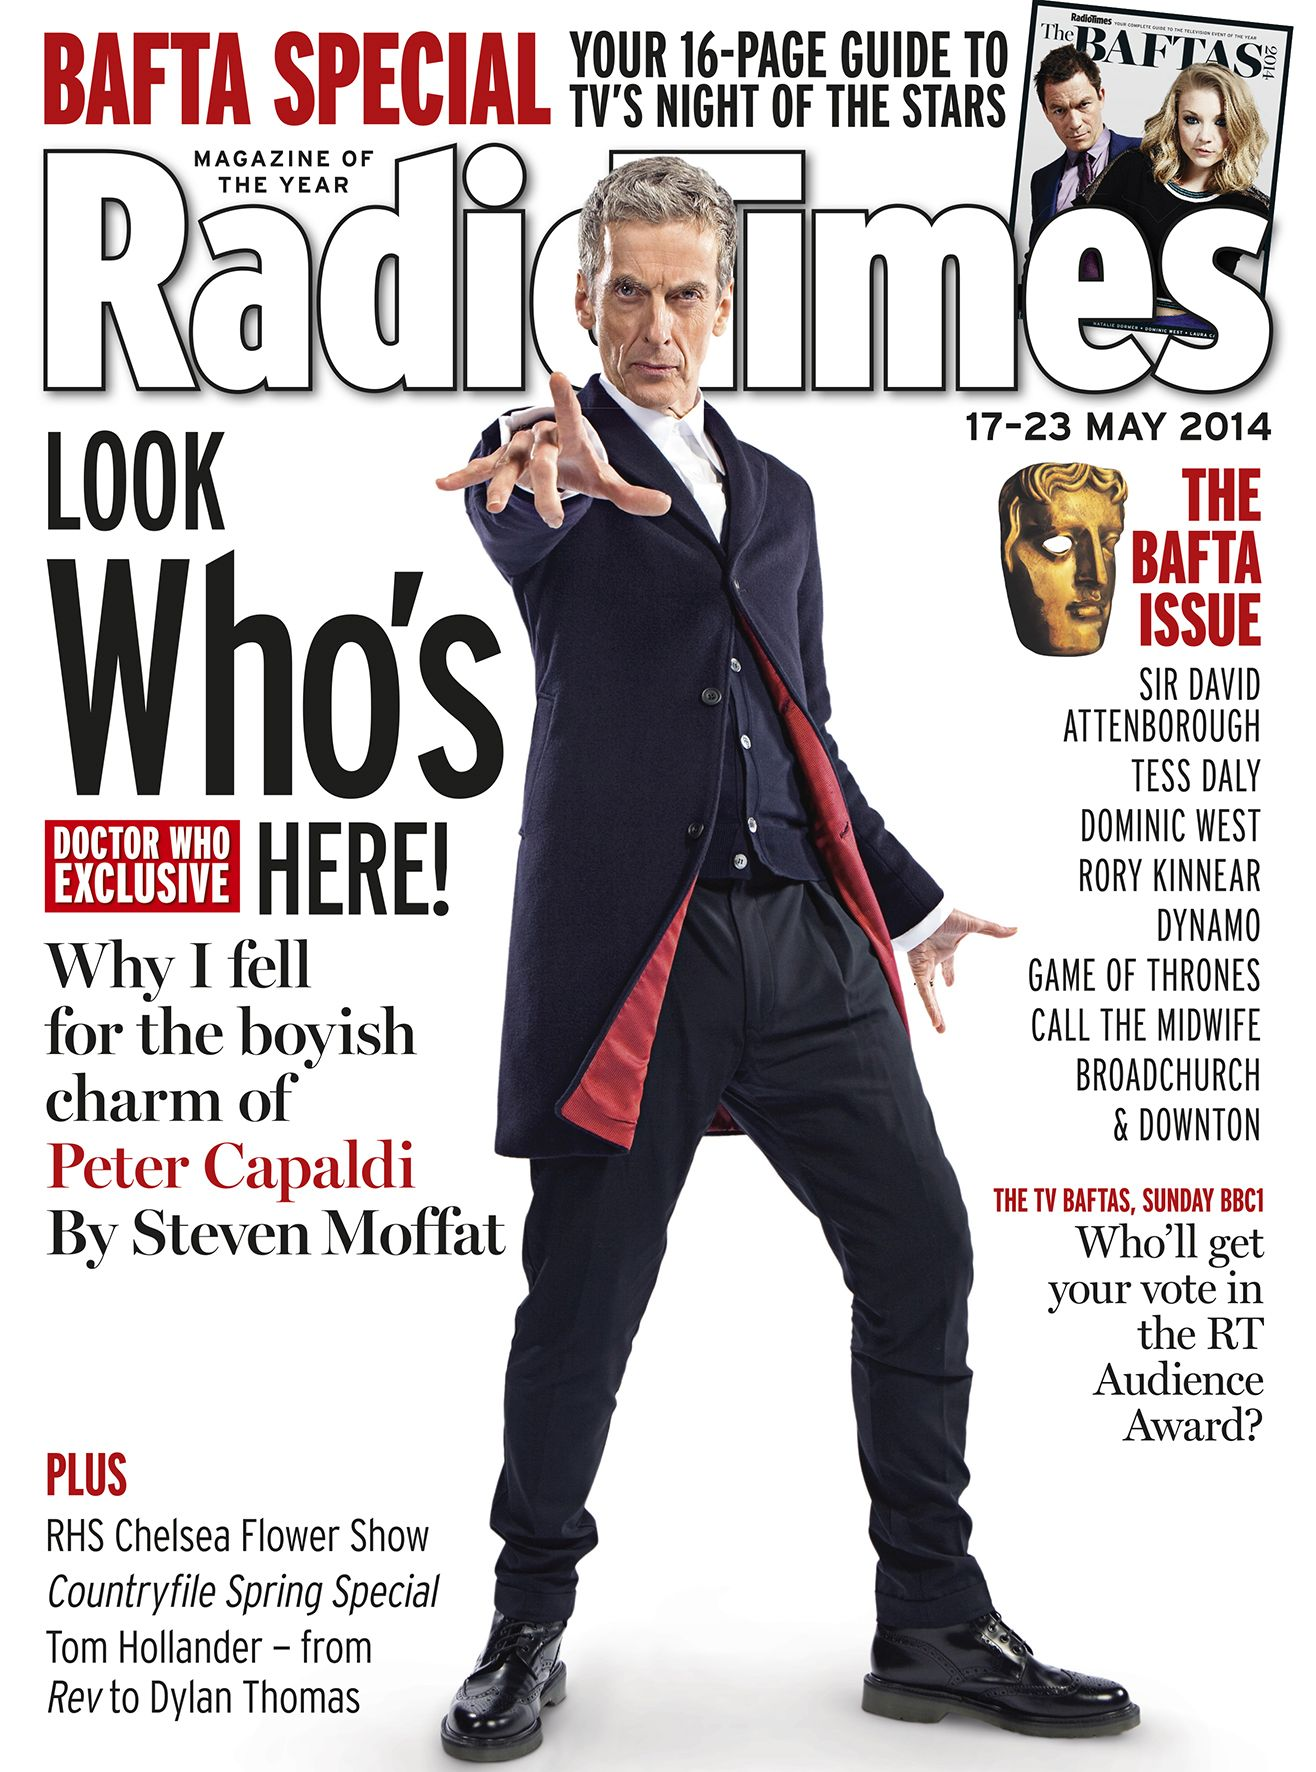 Radio Times (17-23 May 2014) (Credit: Radio Times)